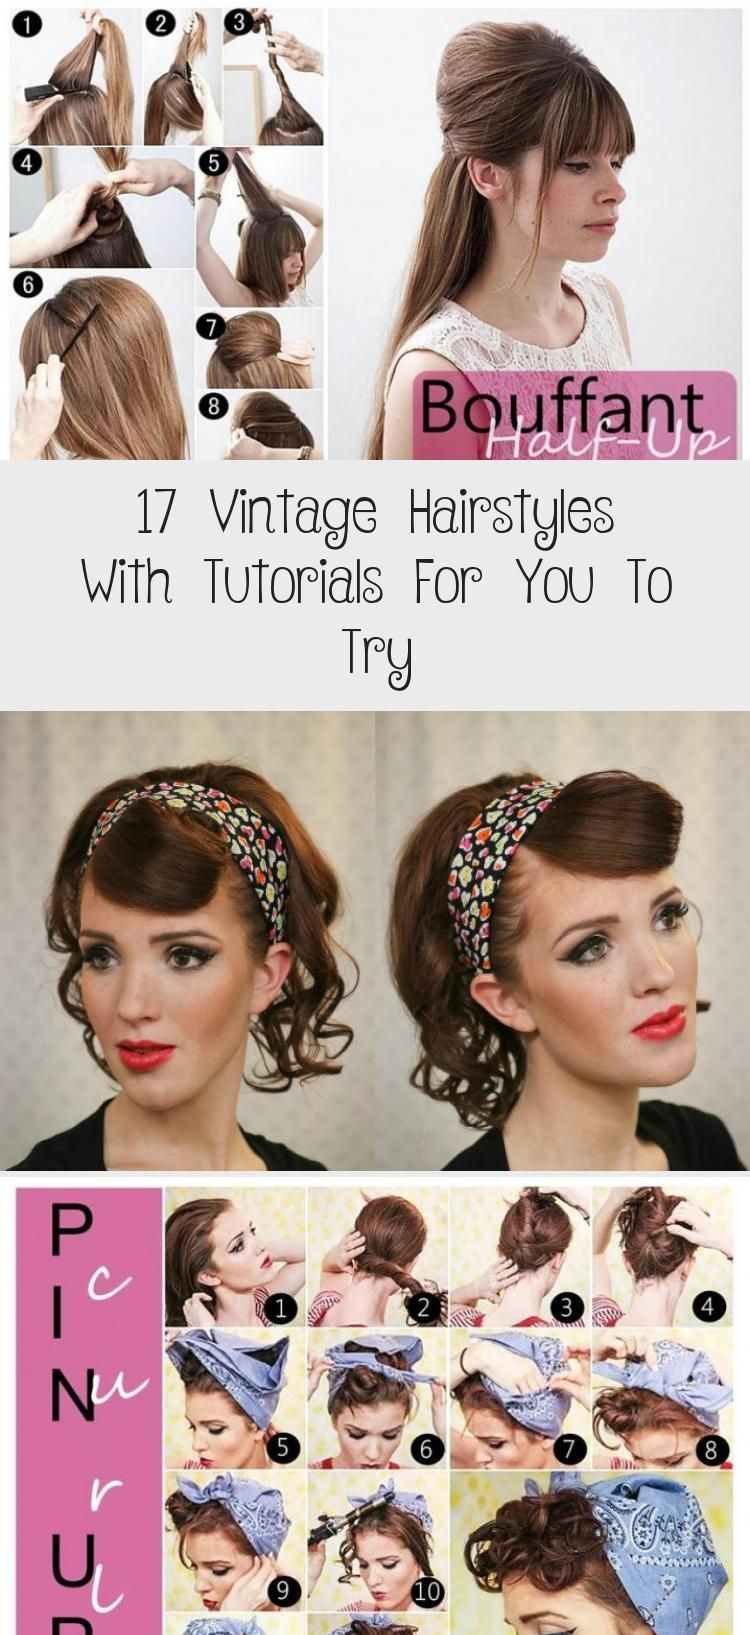 17 Vintage Hairstyles With Tutorials For You To Try Hairstyle Vintage Hairstyles That Are In 2020 Vintage Hairstyles Try On Hairstyles Vintage Hairstyles Tutorial